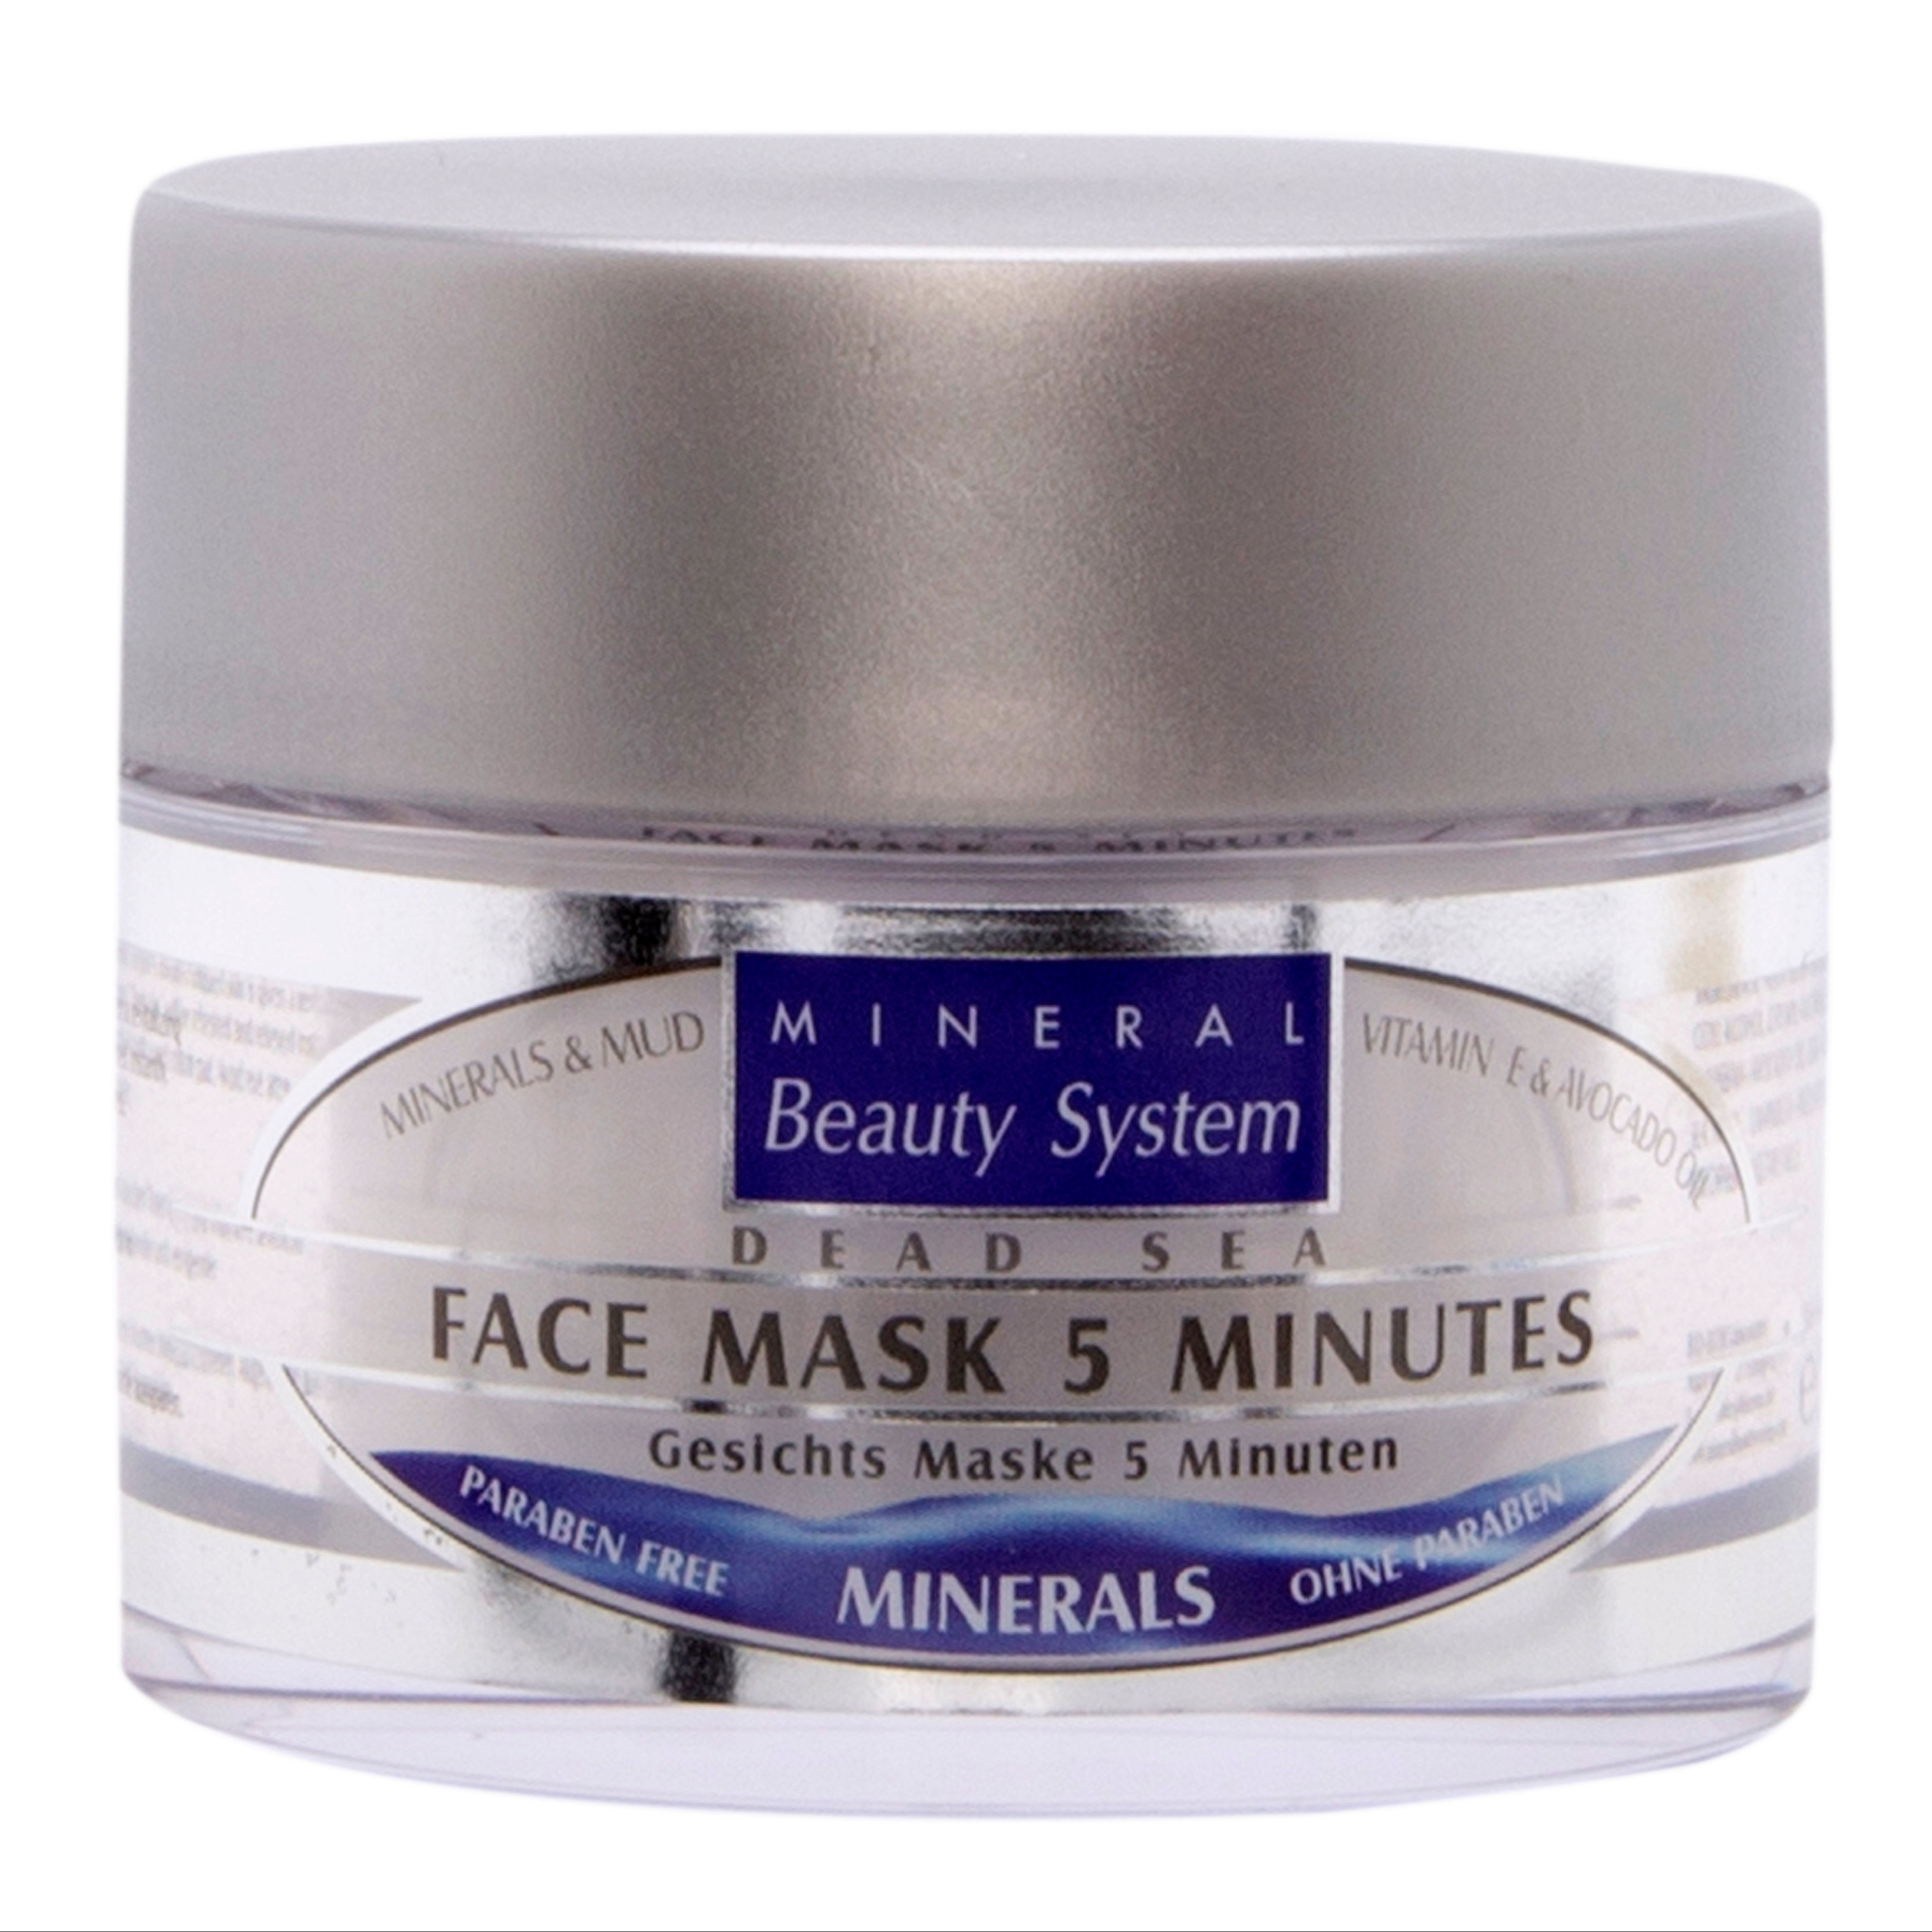 Classic Skin Care Face Mask 5 Minutes Anti Stress for all skin types - Dead Dead Sea Cosmetics